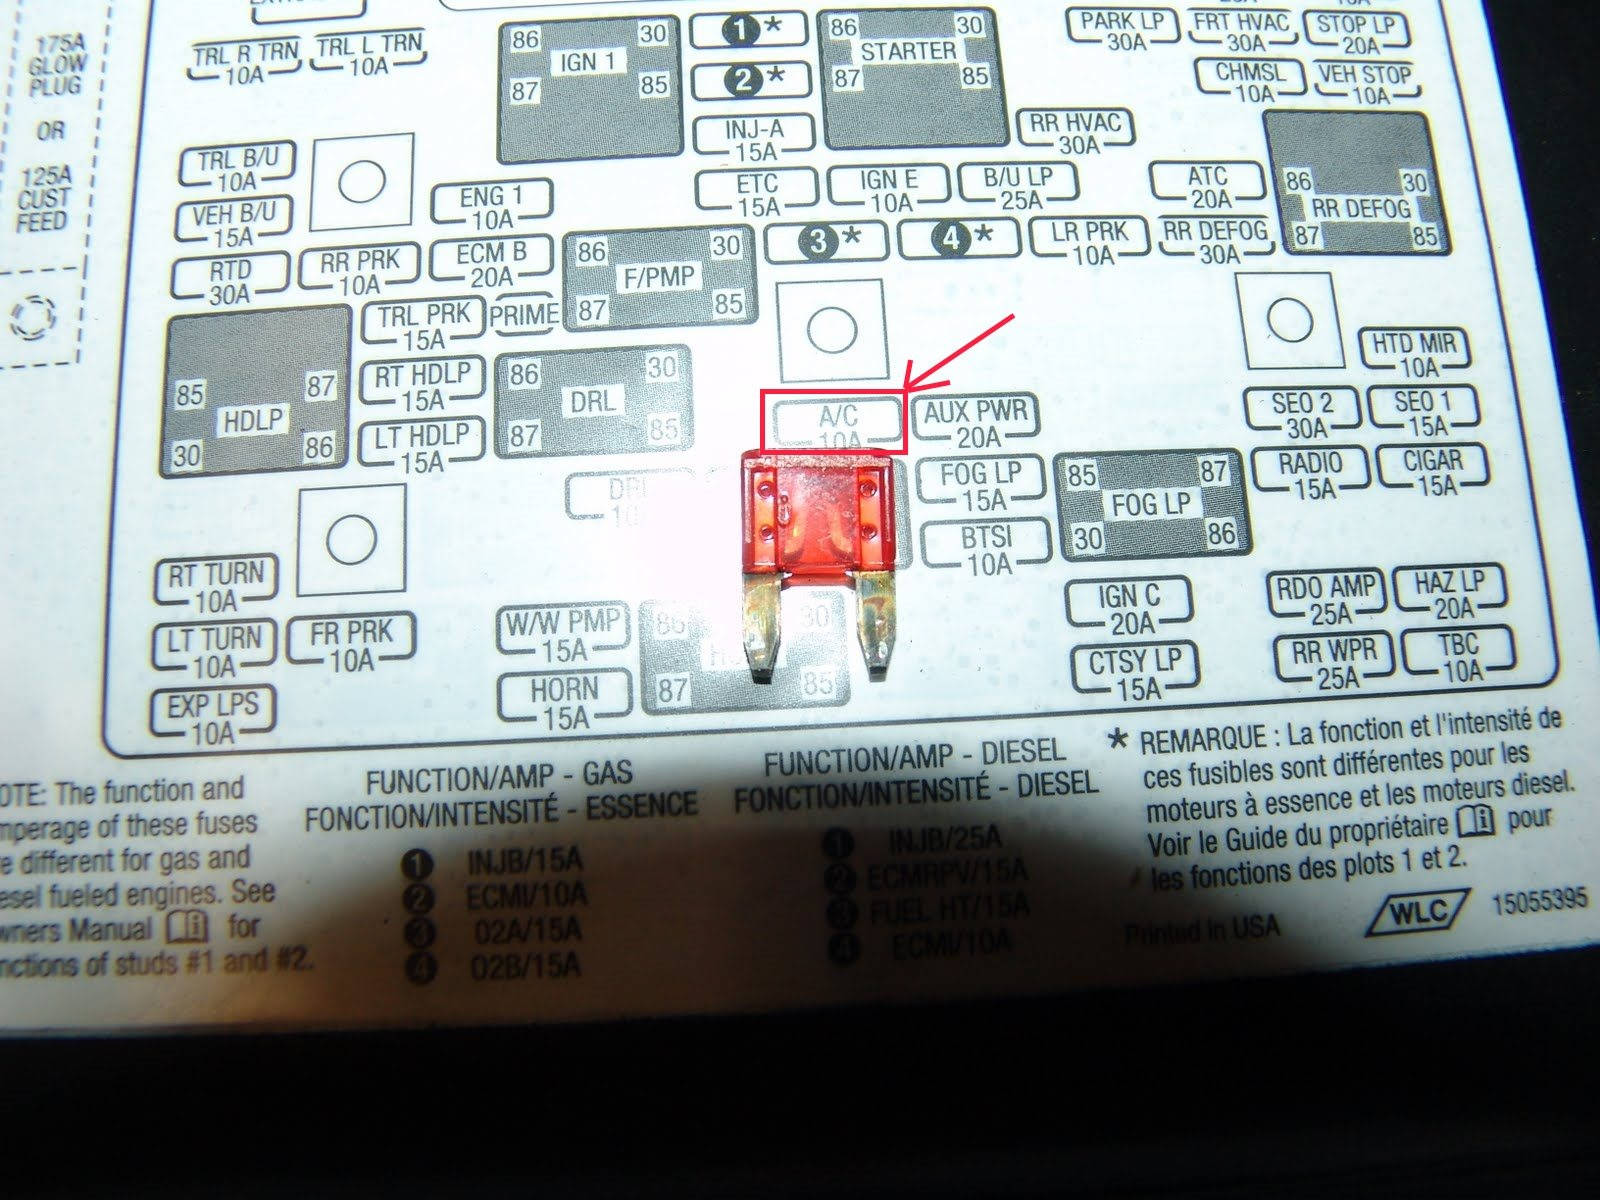 WRG-4274] 04 Chevrolet Trailblazer Fuse Box